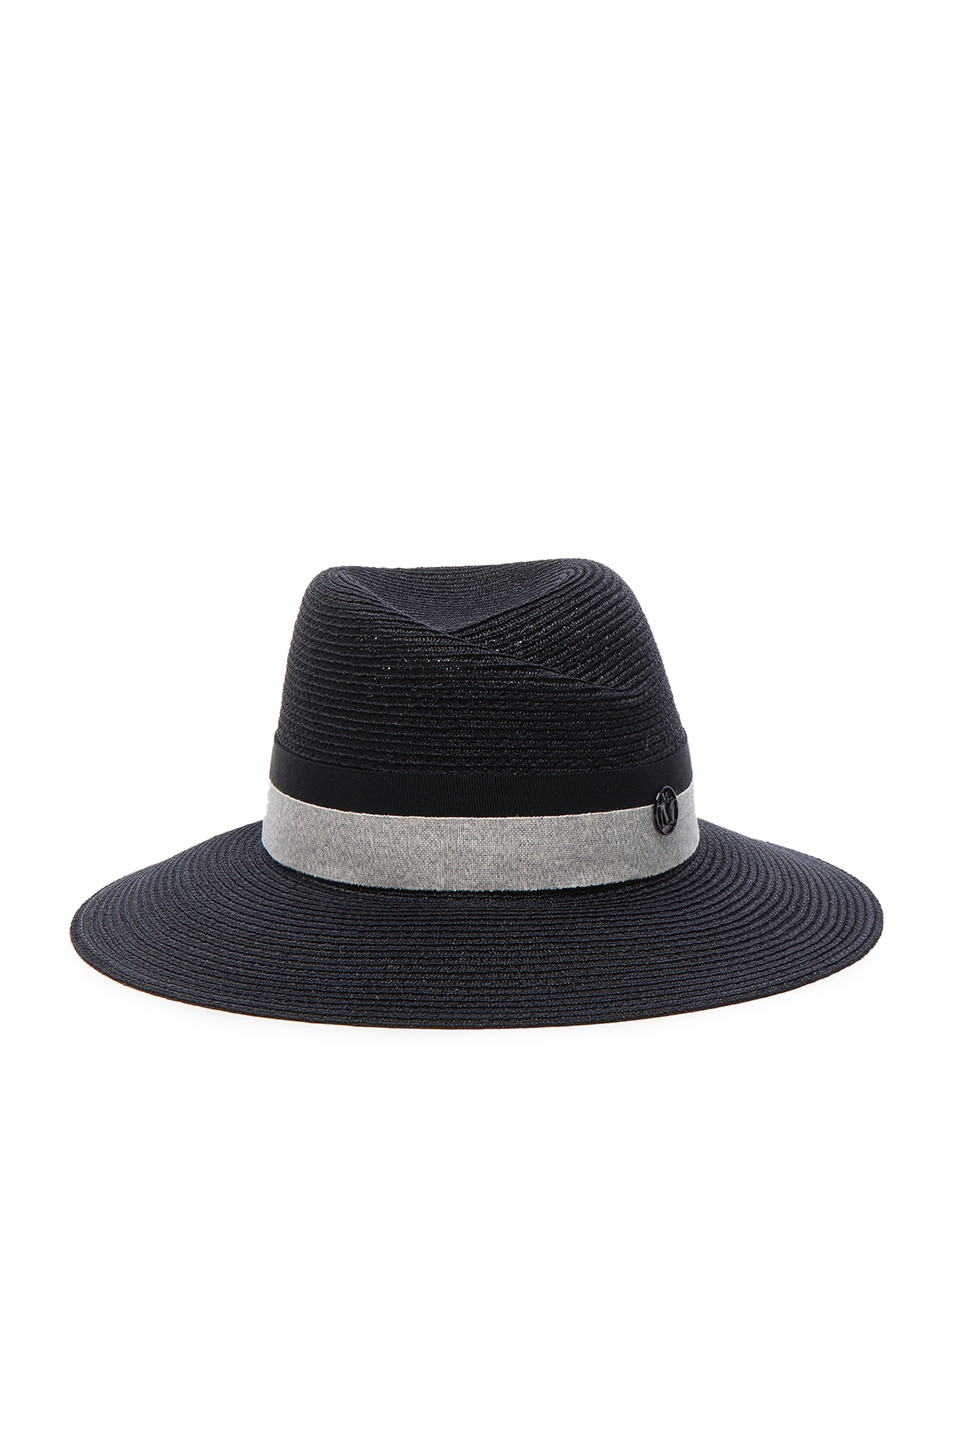 9e815615078aa Image 1 of Maison Michel Rosa Straw Hat in Captain Navy